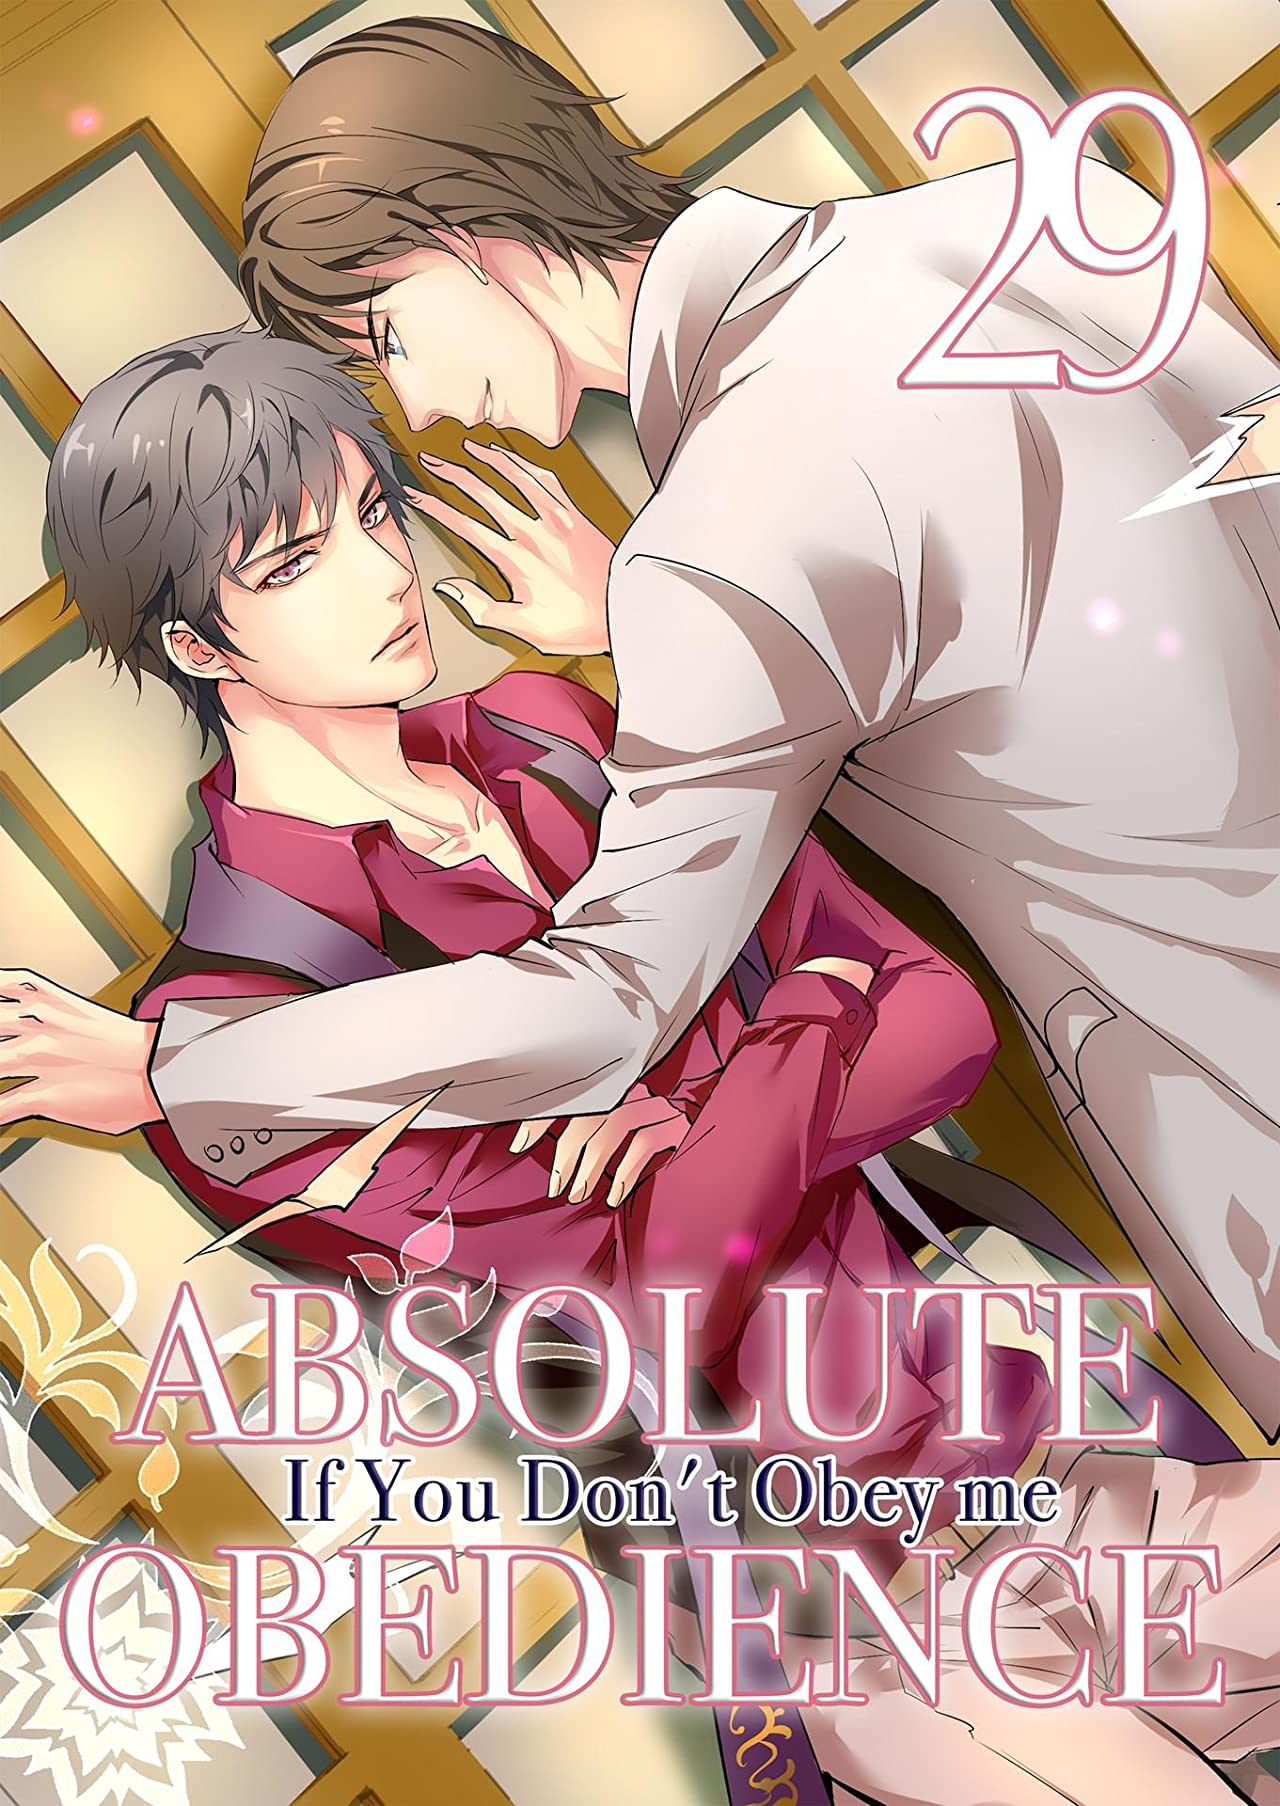 Absolute Obedience ~If you don't obey me~ (Yaoi Manga) Vol. 29